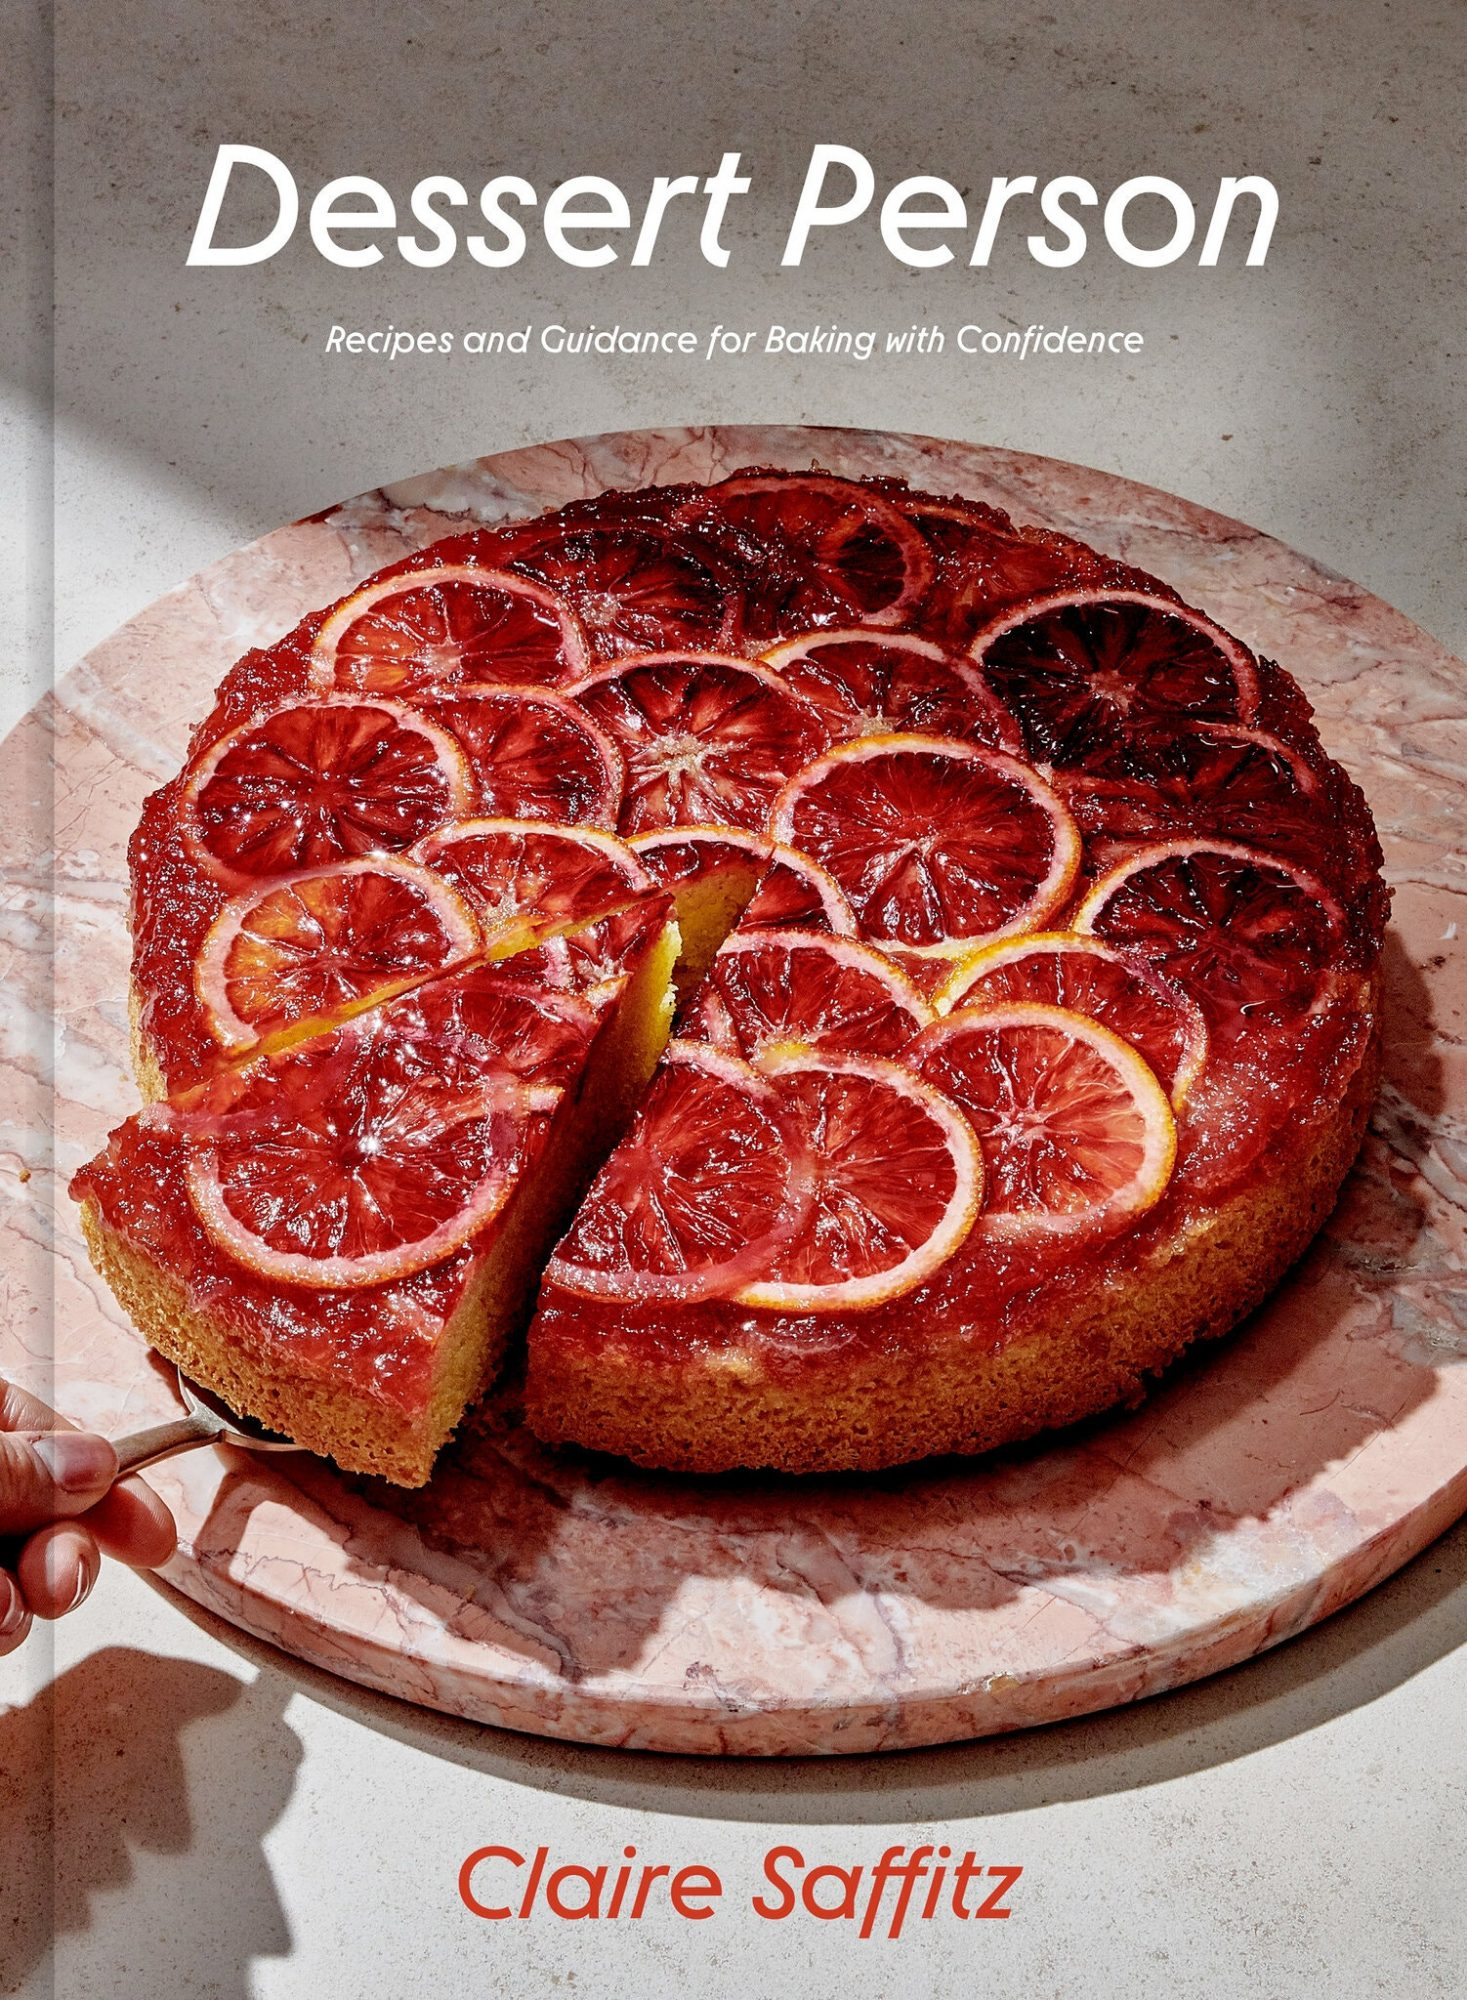 book cover for Dessert Person: Recipes and Guidance for Baking with Confidence